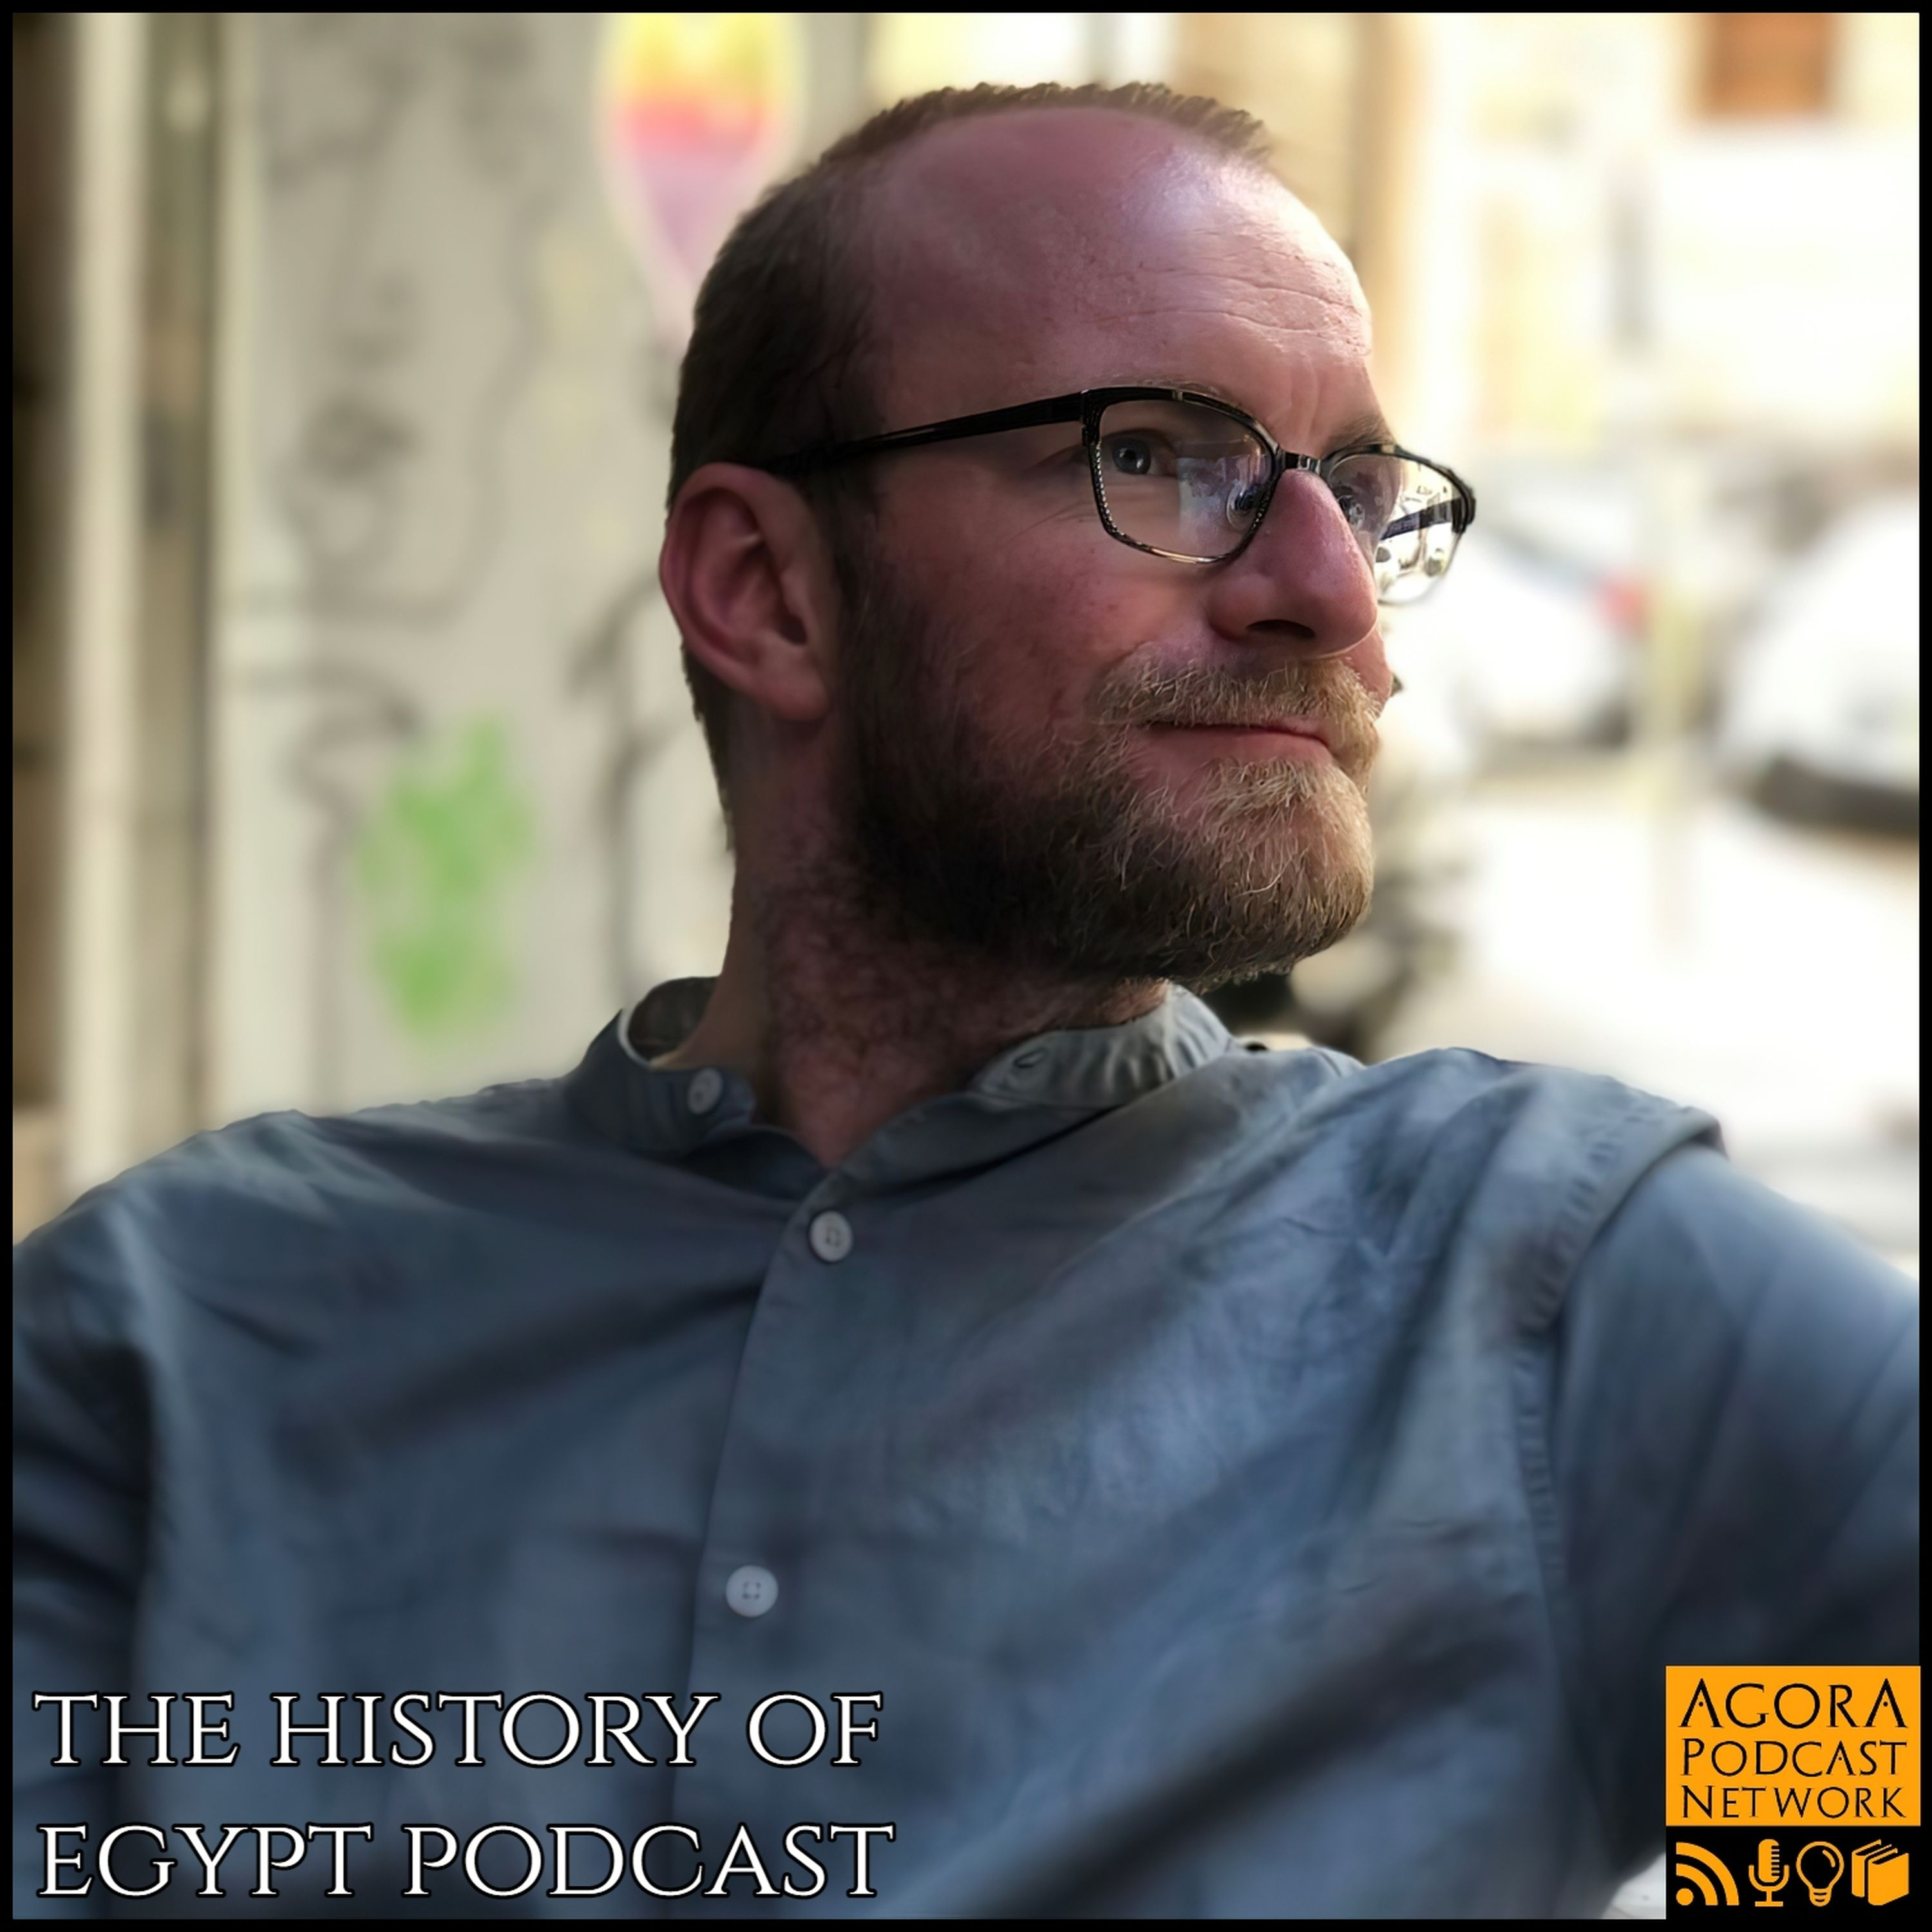 Interview: Ancient Technologies, with Dr. Martin Odler